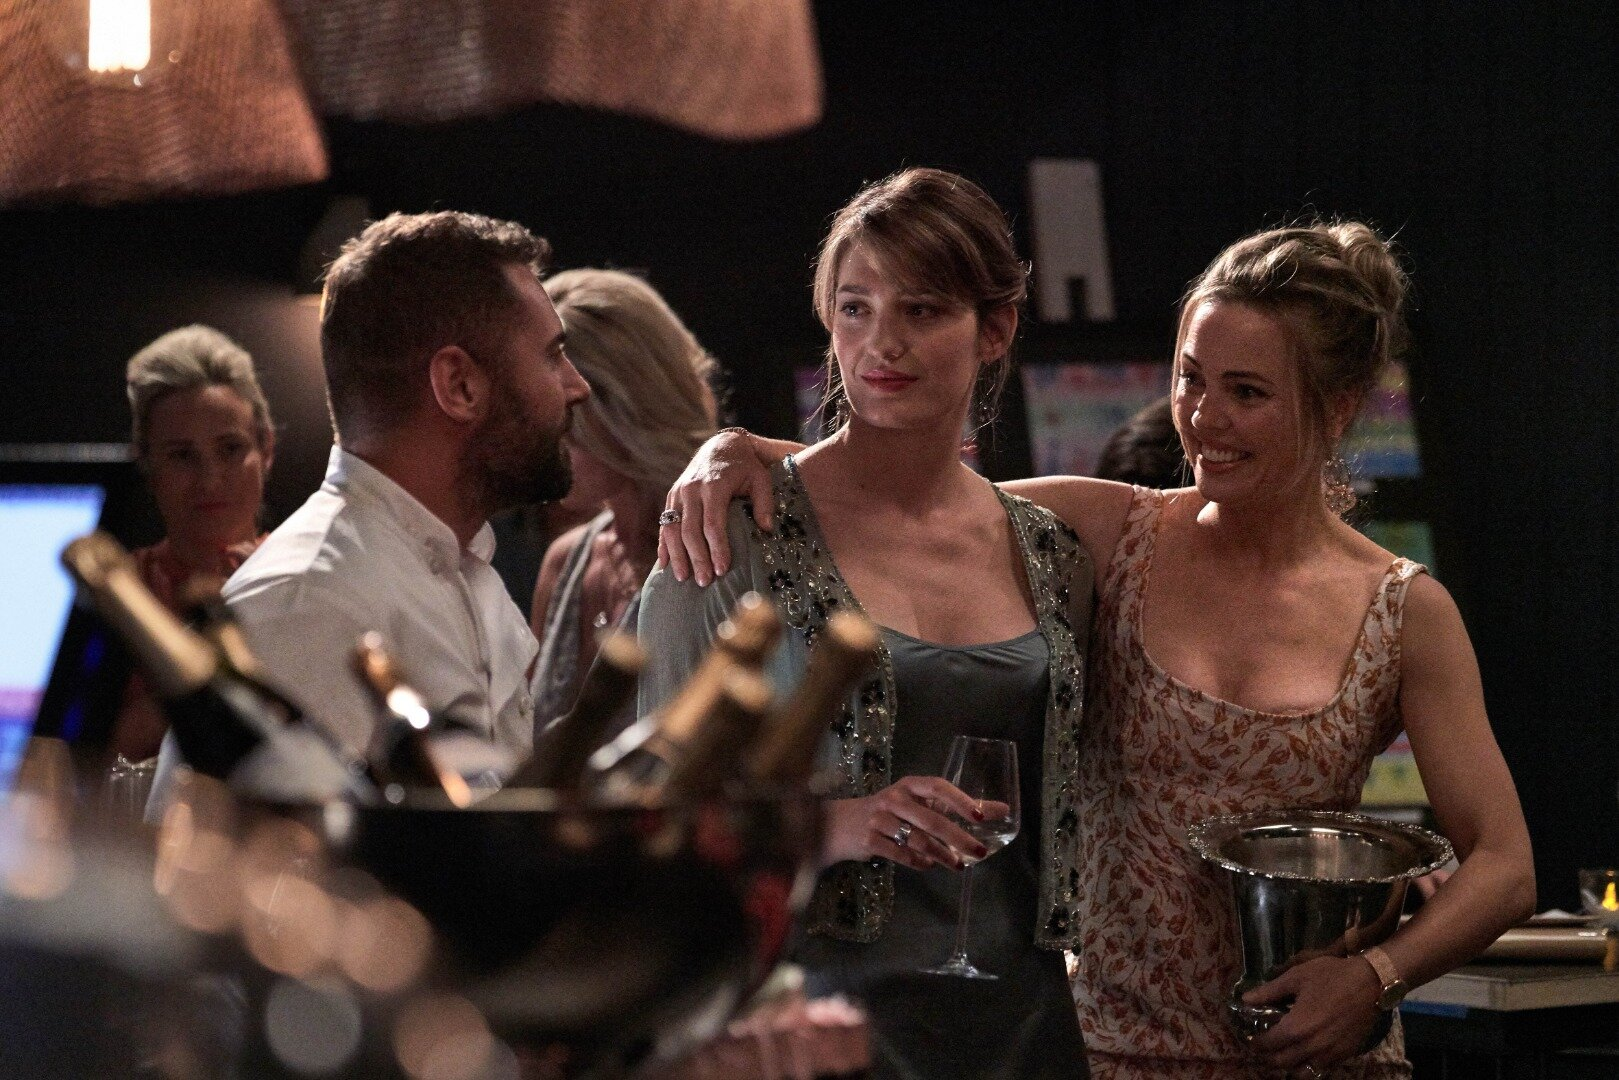 bad-mothers-ep-1-dsc8335-daniel-macpherson-as-anton-pooley_tess-haubrich-as-sarah-pooley-melissa-george-as-charlotte-evans-photo-scott-mcaulay.jpg